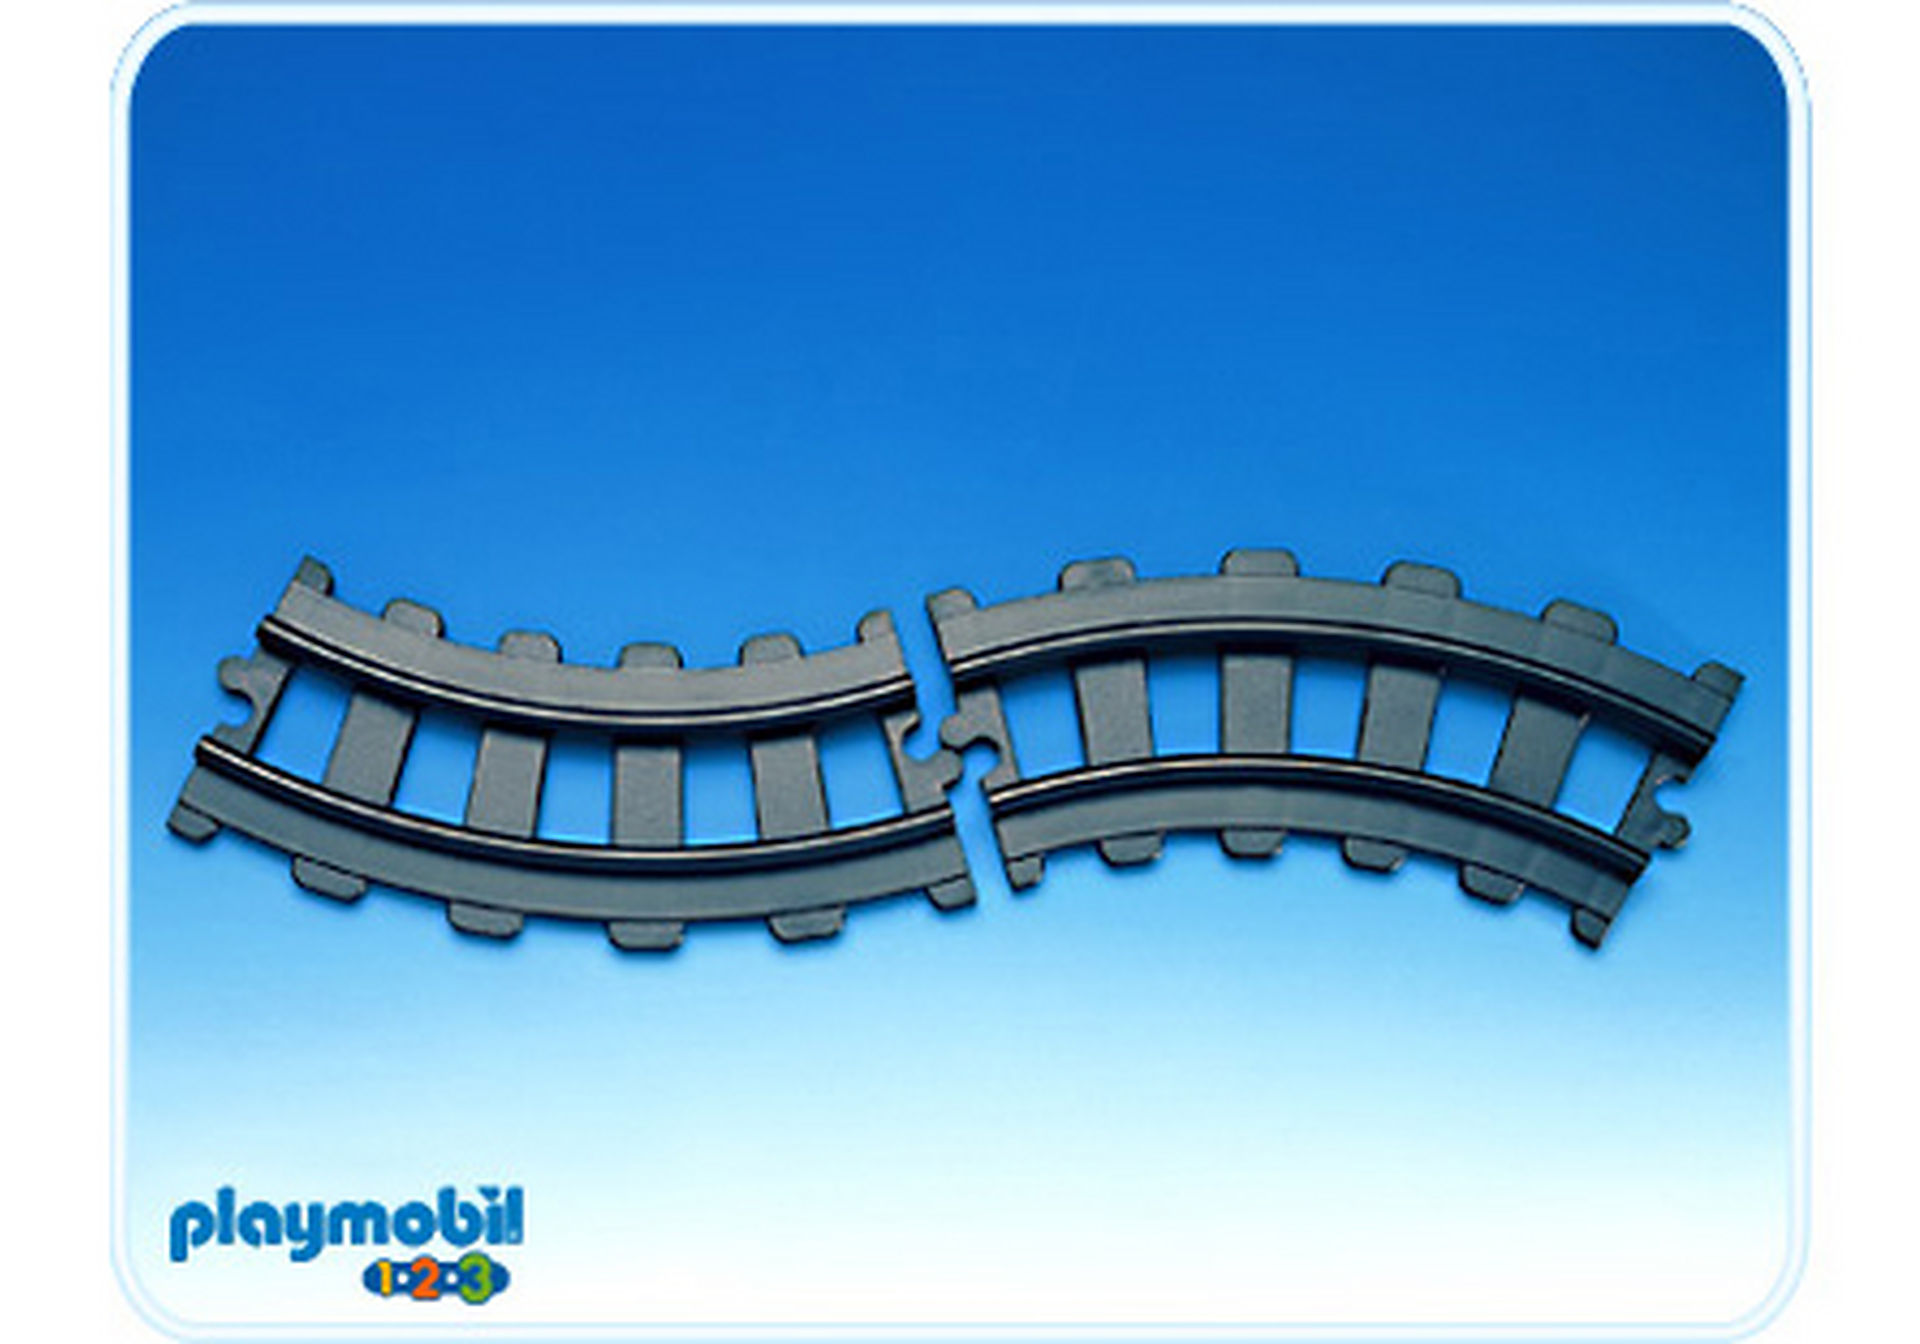 http://media.playmobil.com/i/playmobil/6954-A_product_detail/4 rails courbes 1/2 circuit